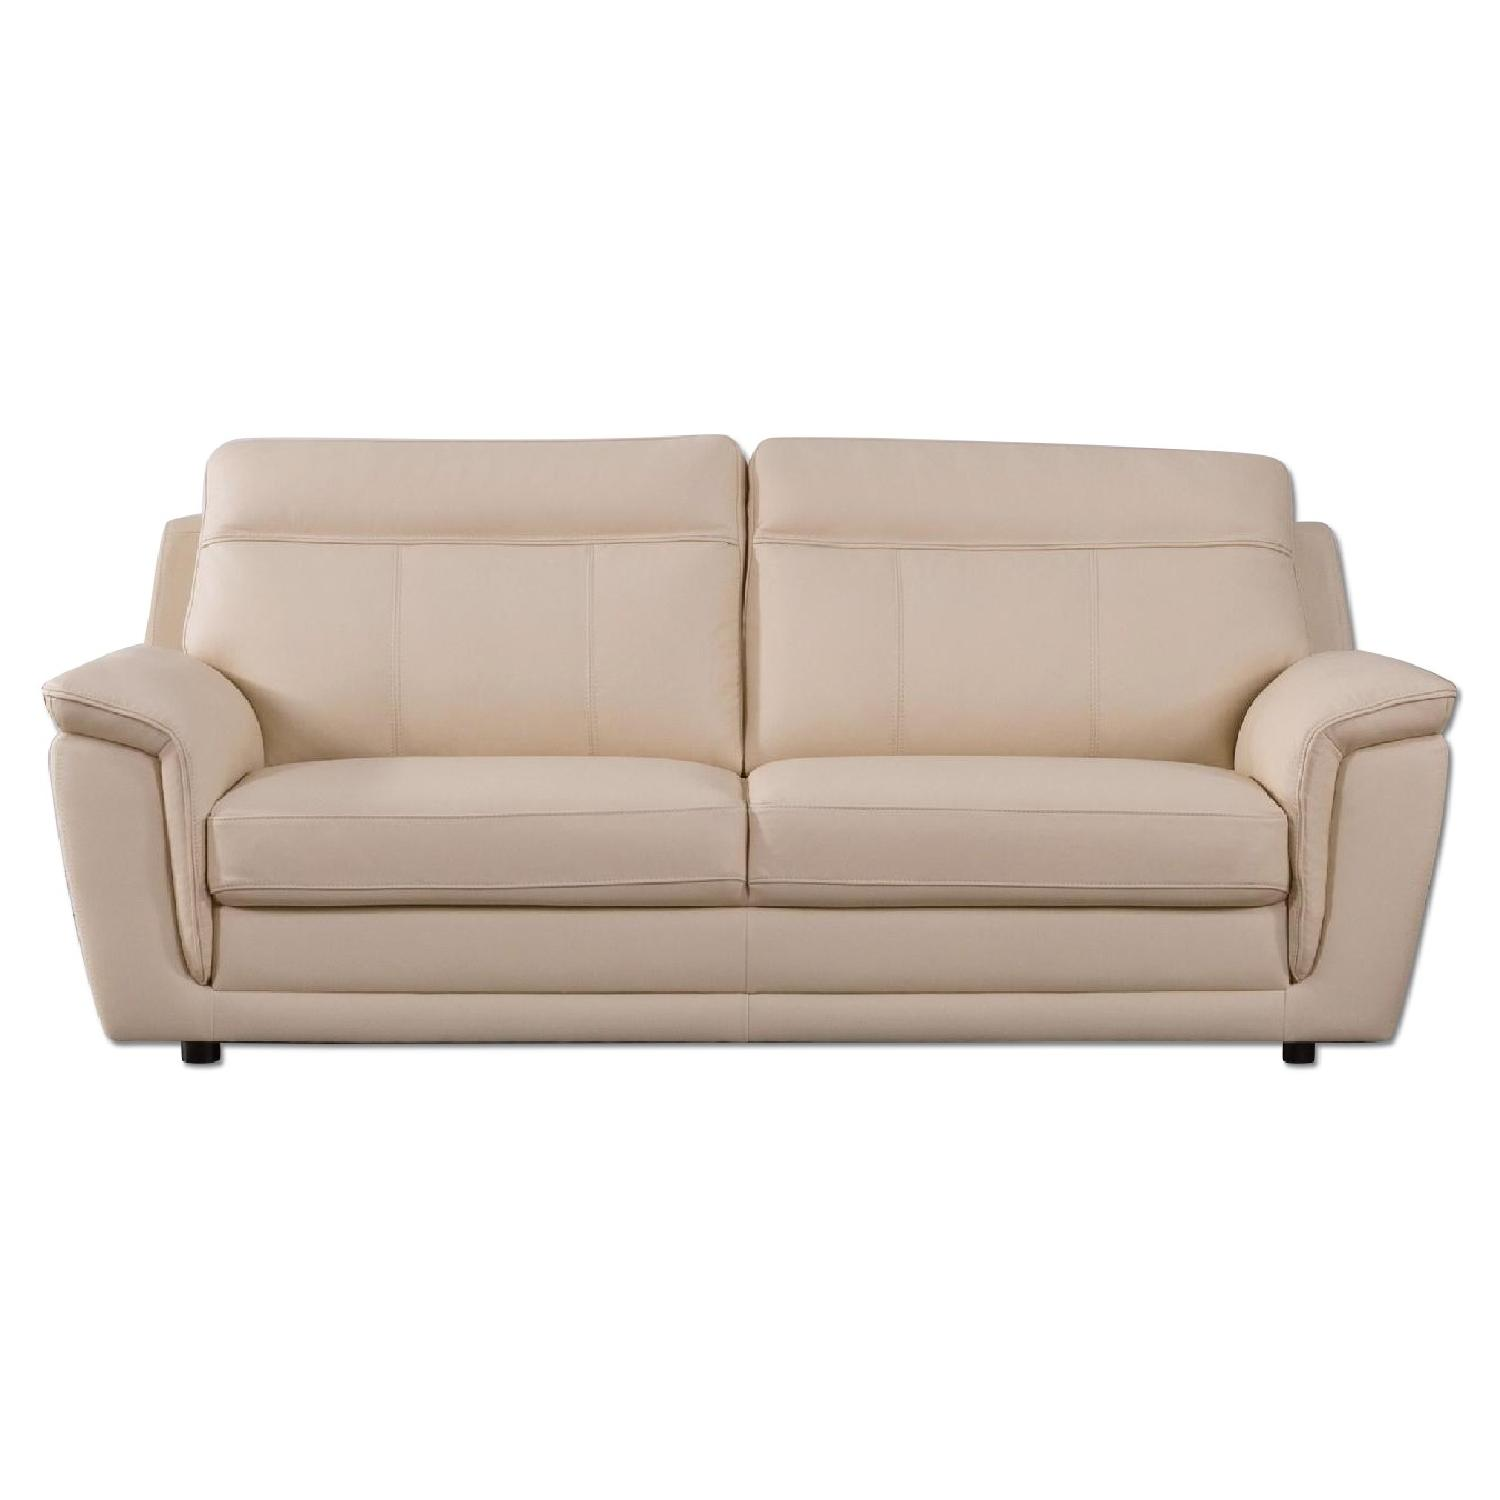 Modern Style Sofa in Beige Color Top Grain Leather w/ High Density Foam & Gently Sloped Armrests